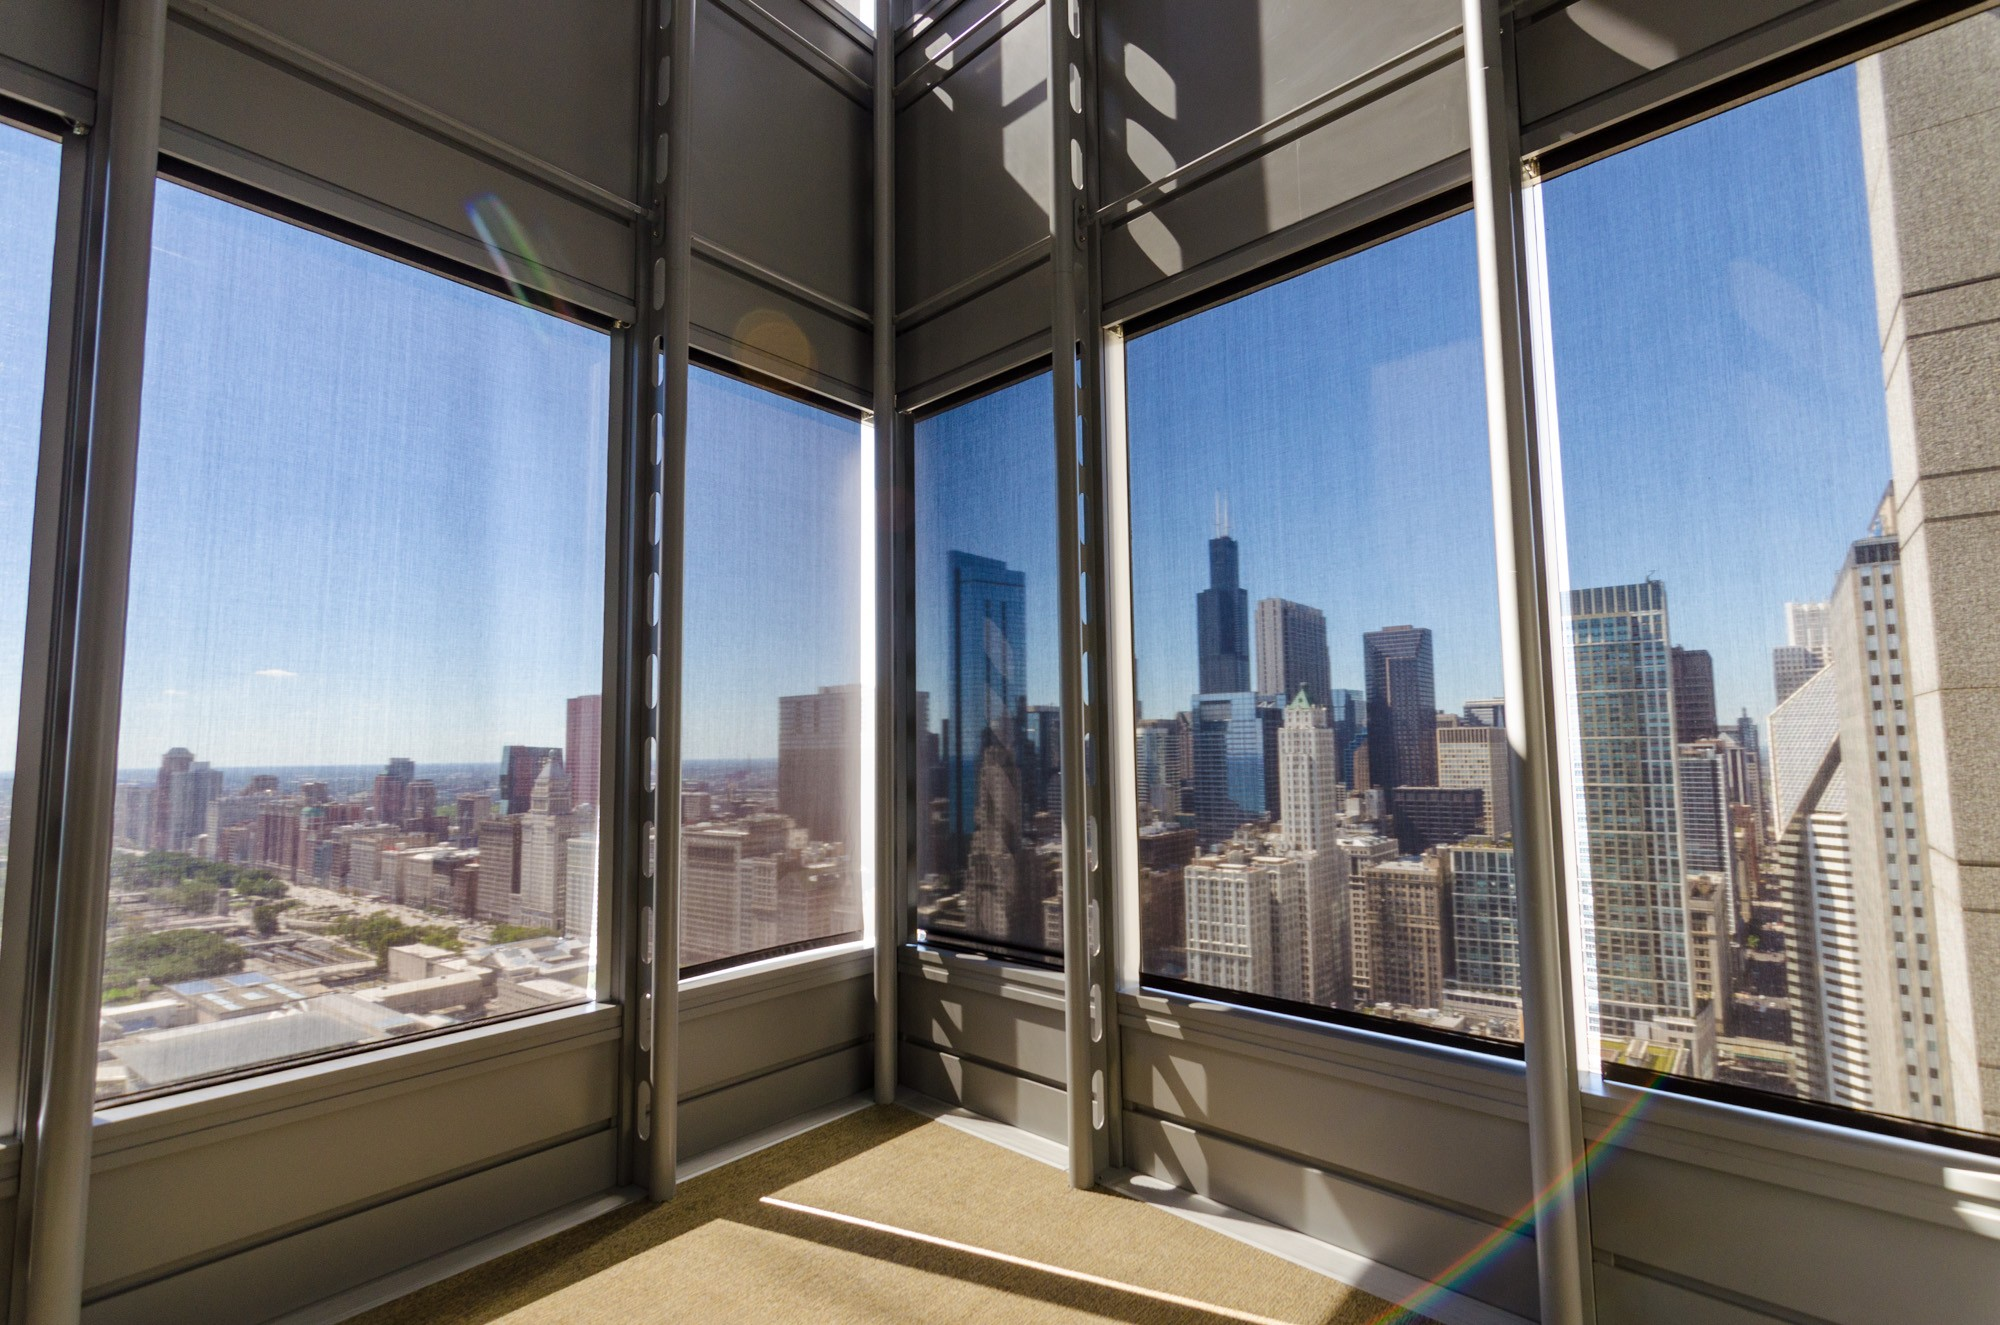 300 East Randolph · Sites · Open House Chicago